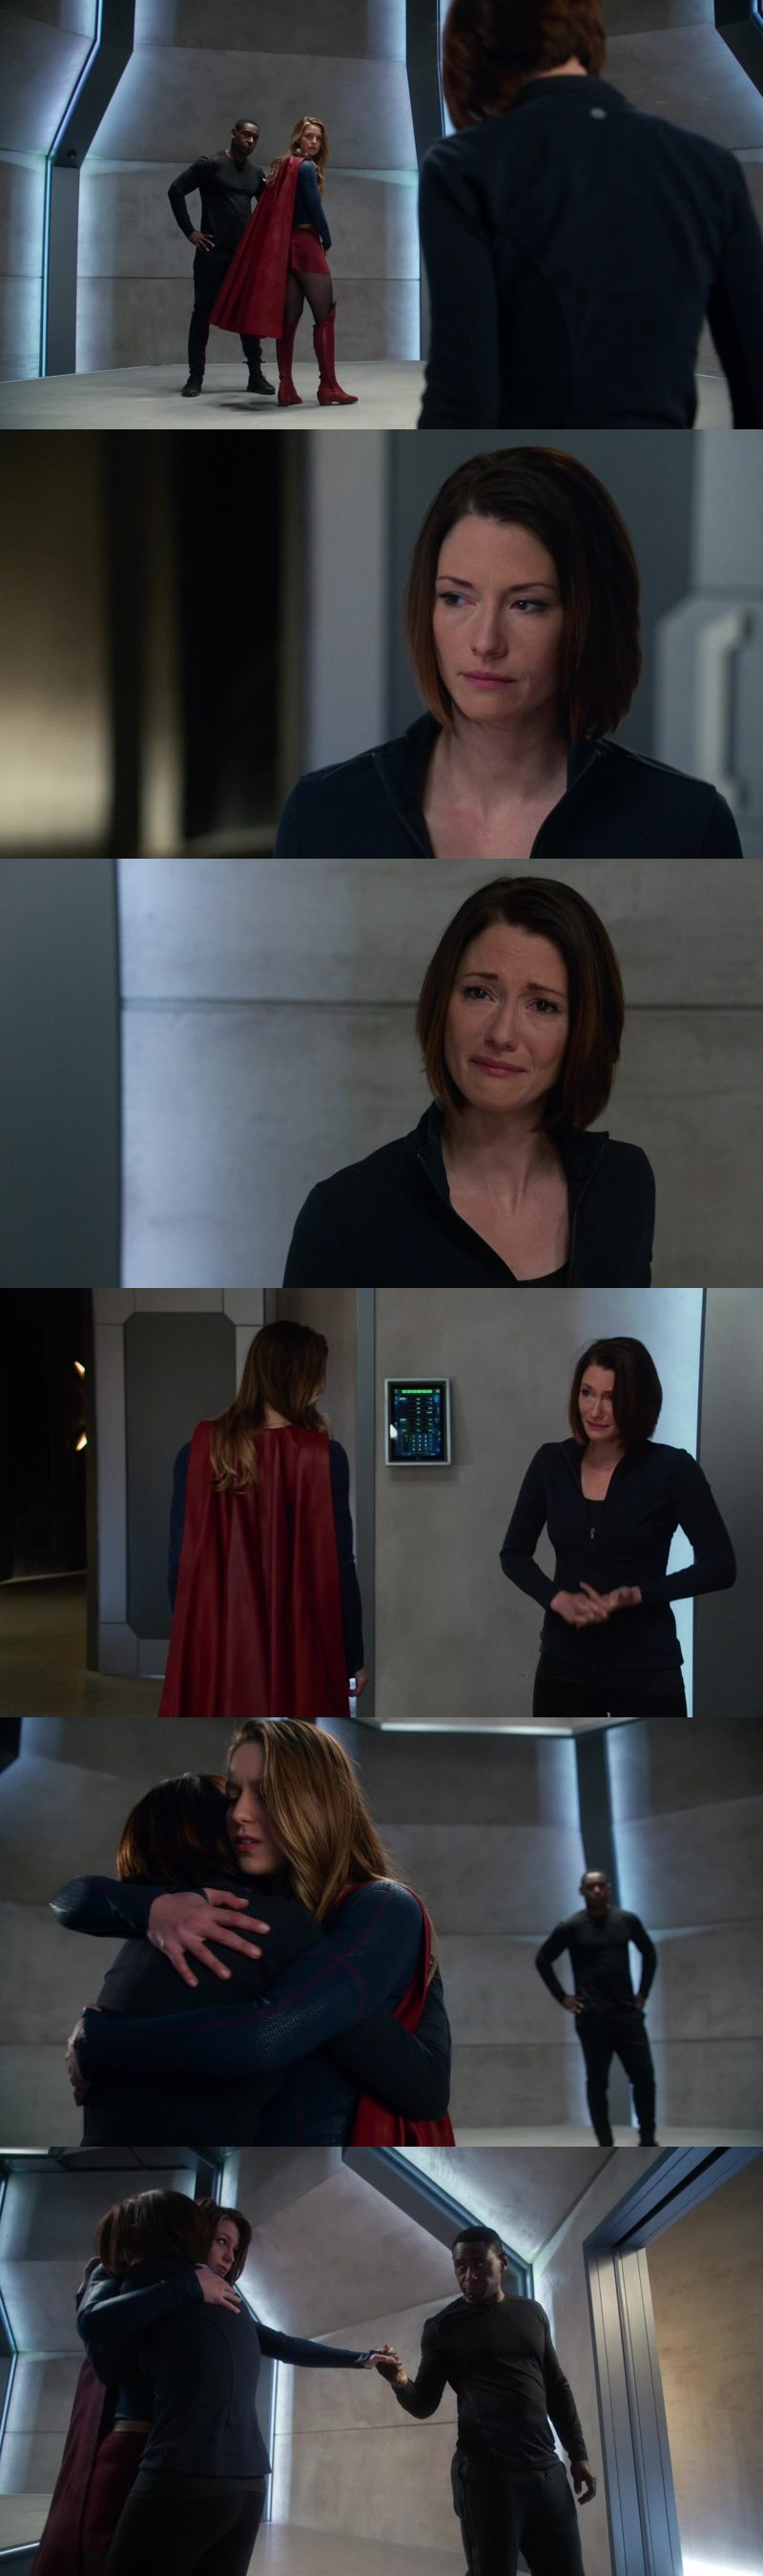 Oh my heart during that scene... Broken into million pieces!! Thank you Kara for just... Just being Alex's sister and being an amazing one. Talk about love after that!